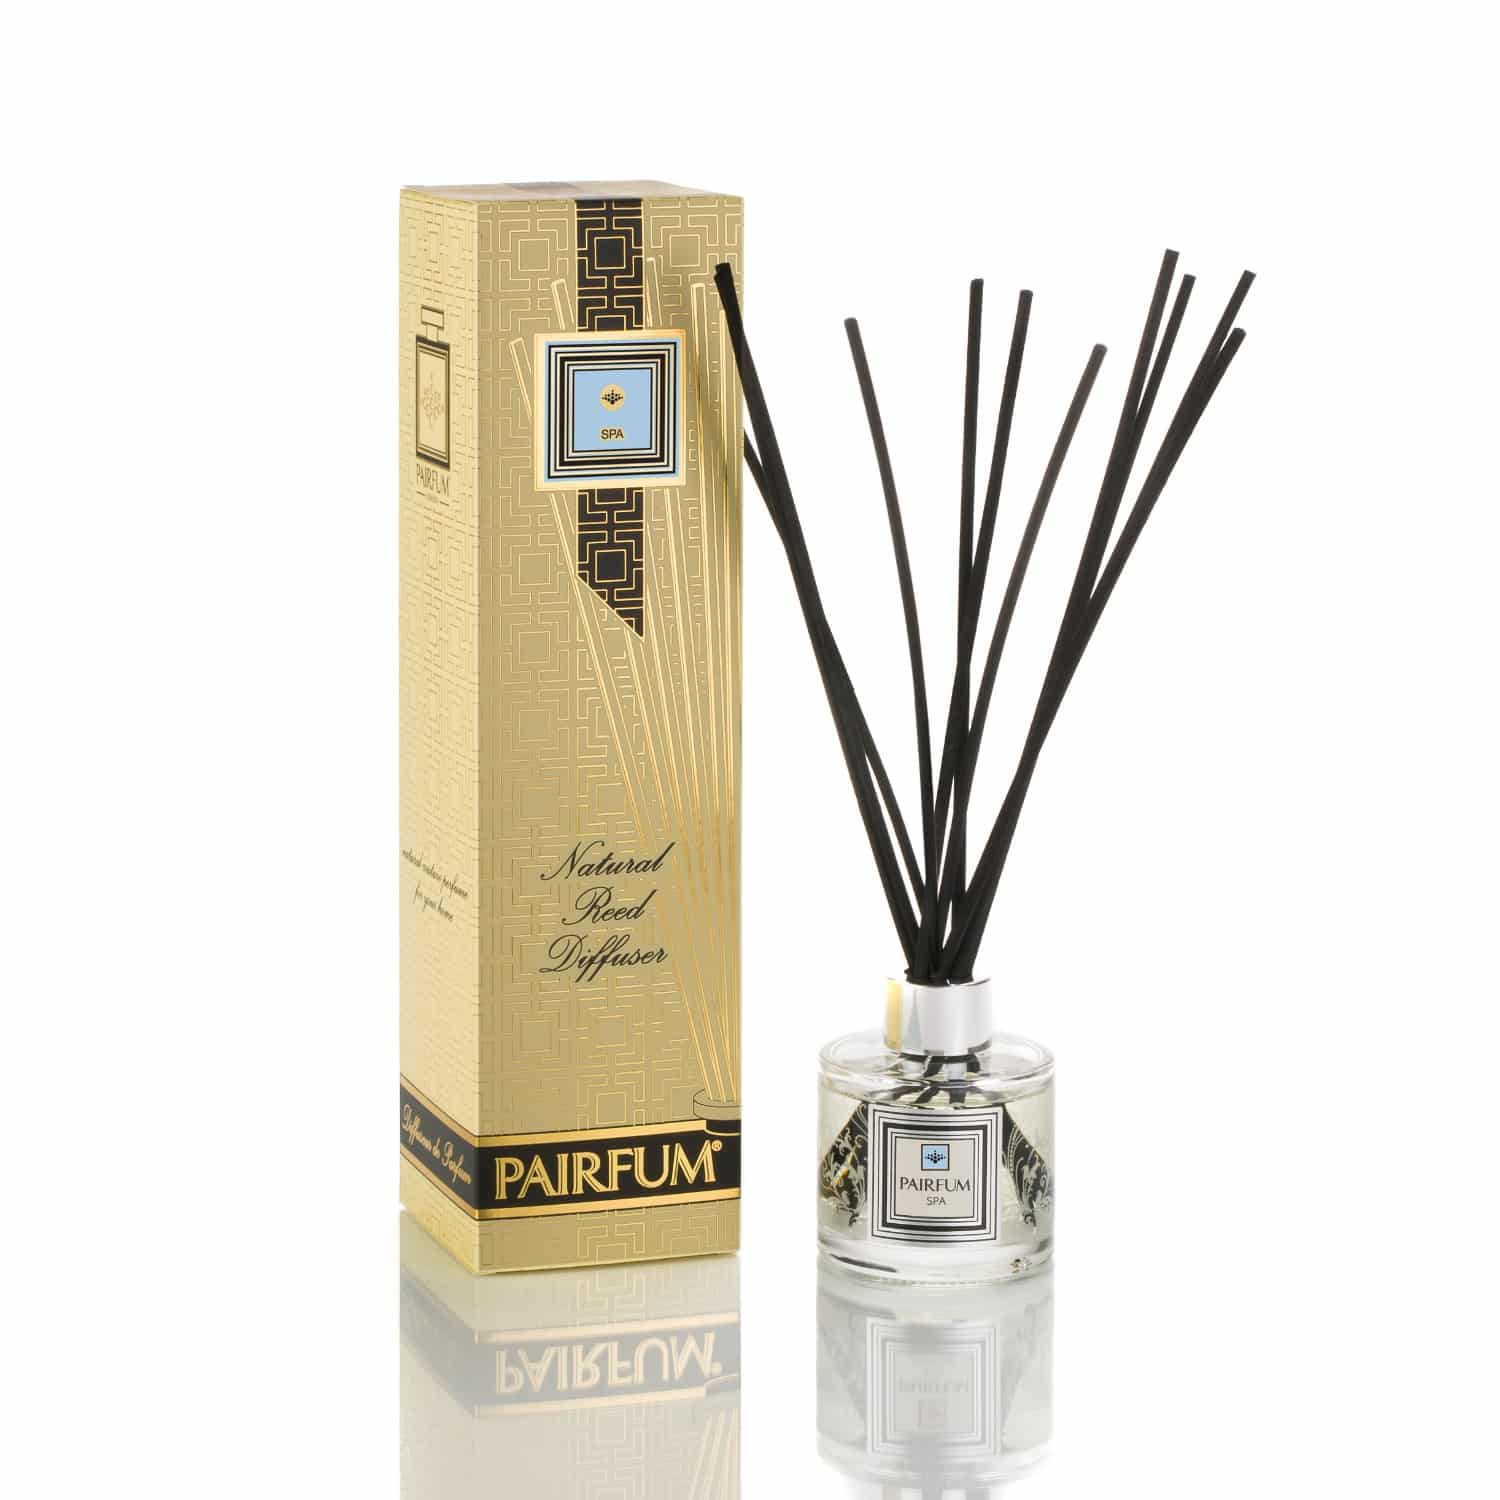 Natural Reed Diffuser by PAIRFUM - Long-Lasting / Large